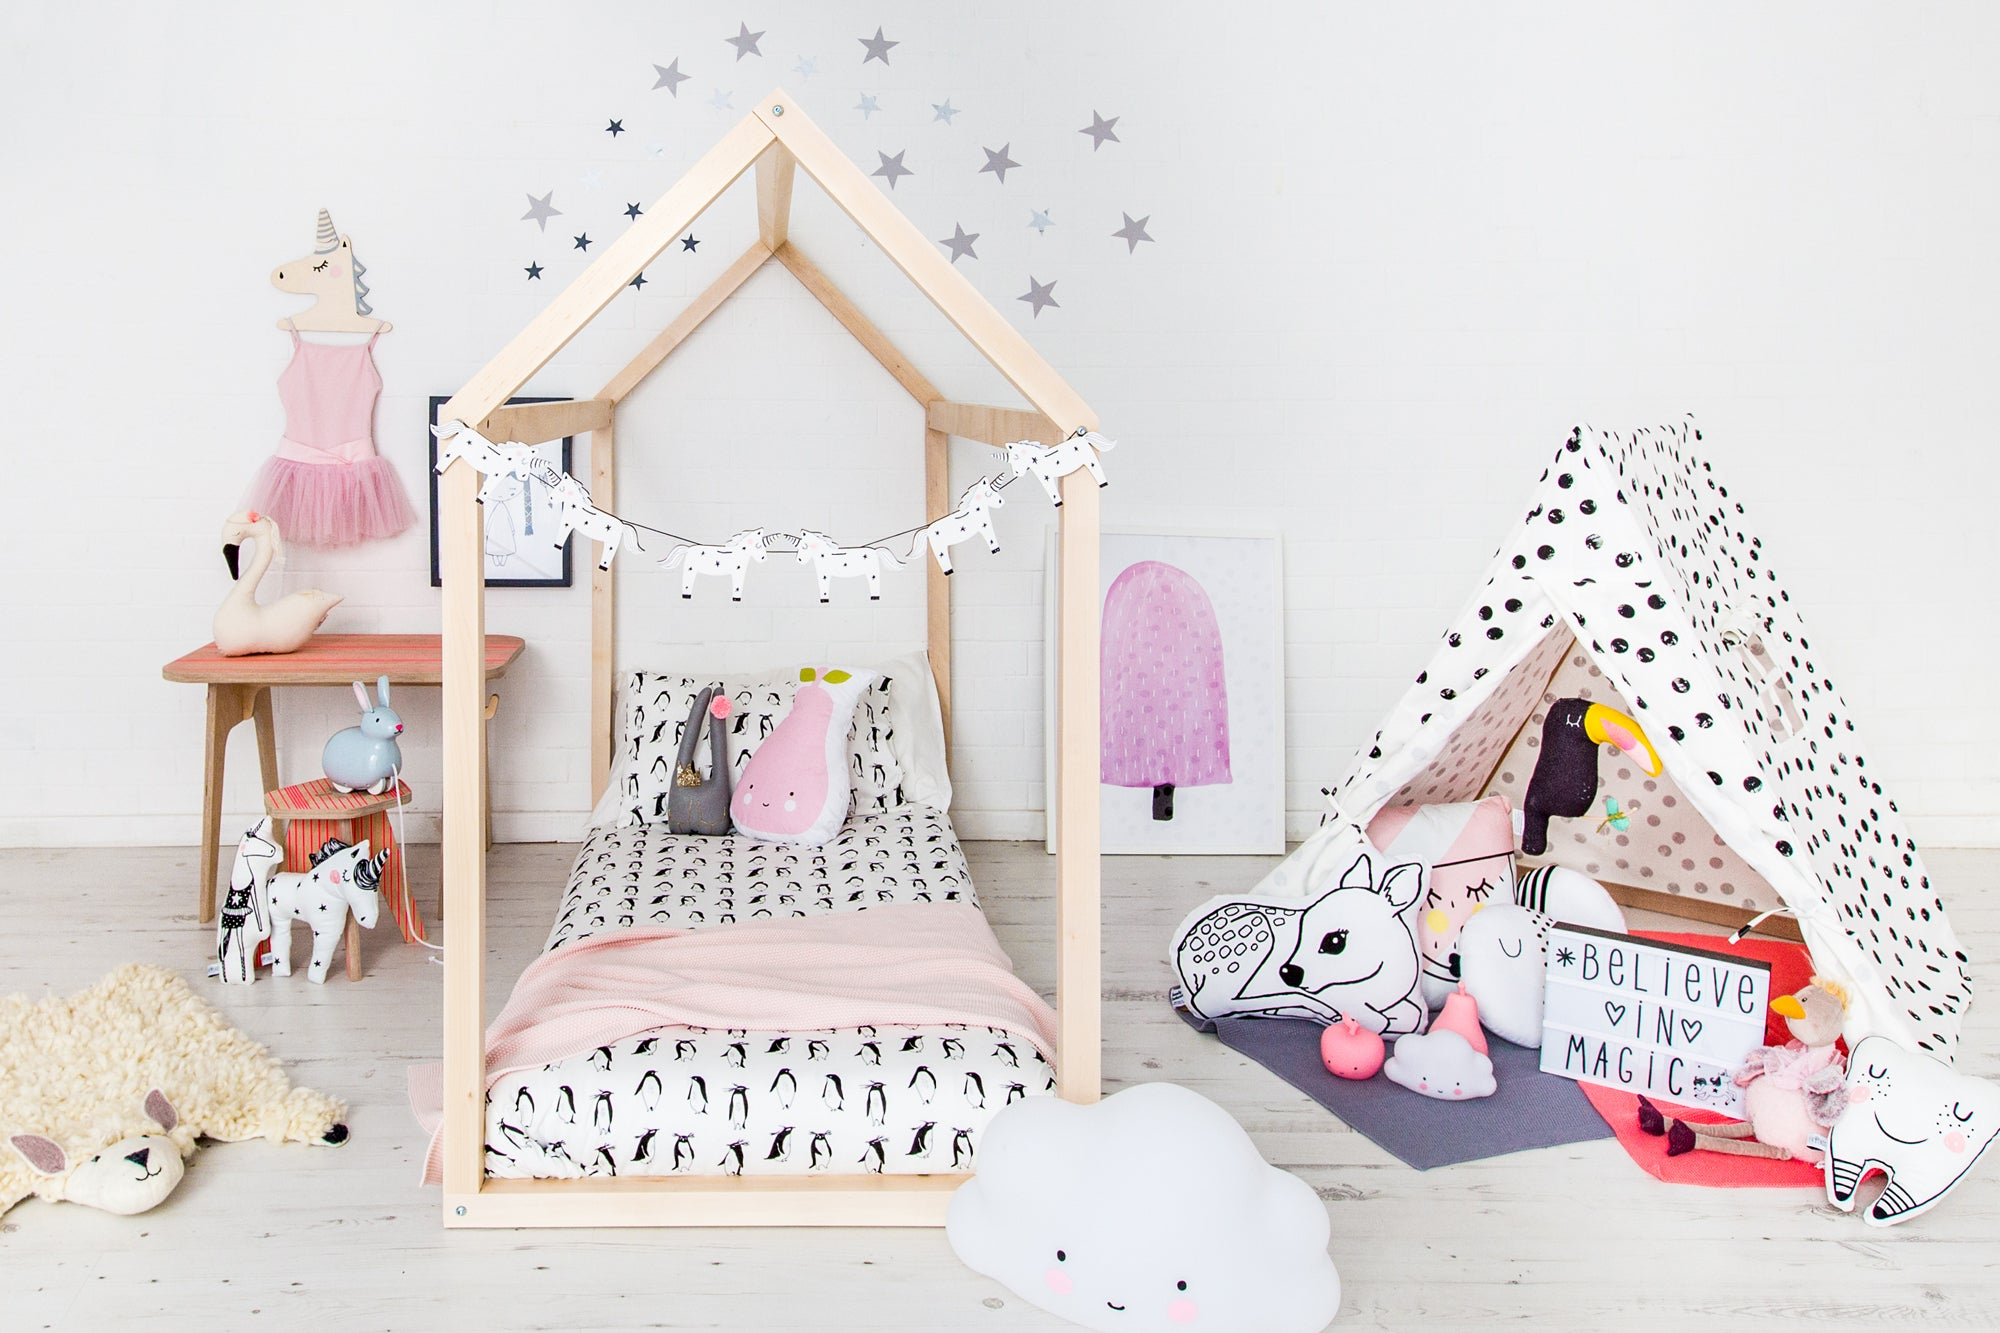 Stardust and Unicorns Children's Bedroom, designed and styled by Bobby Rabbit.